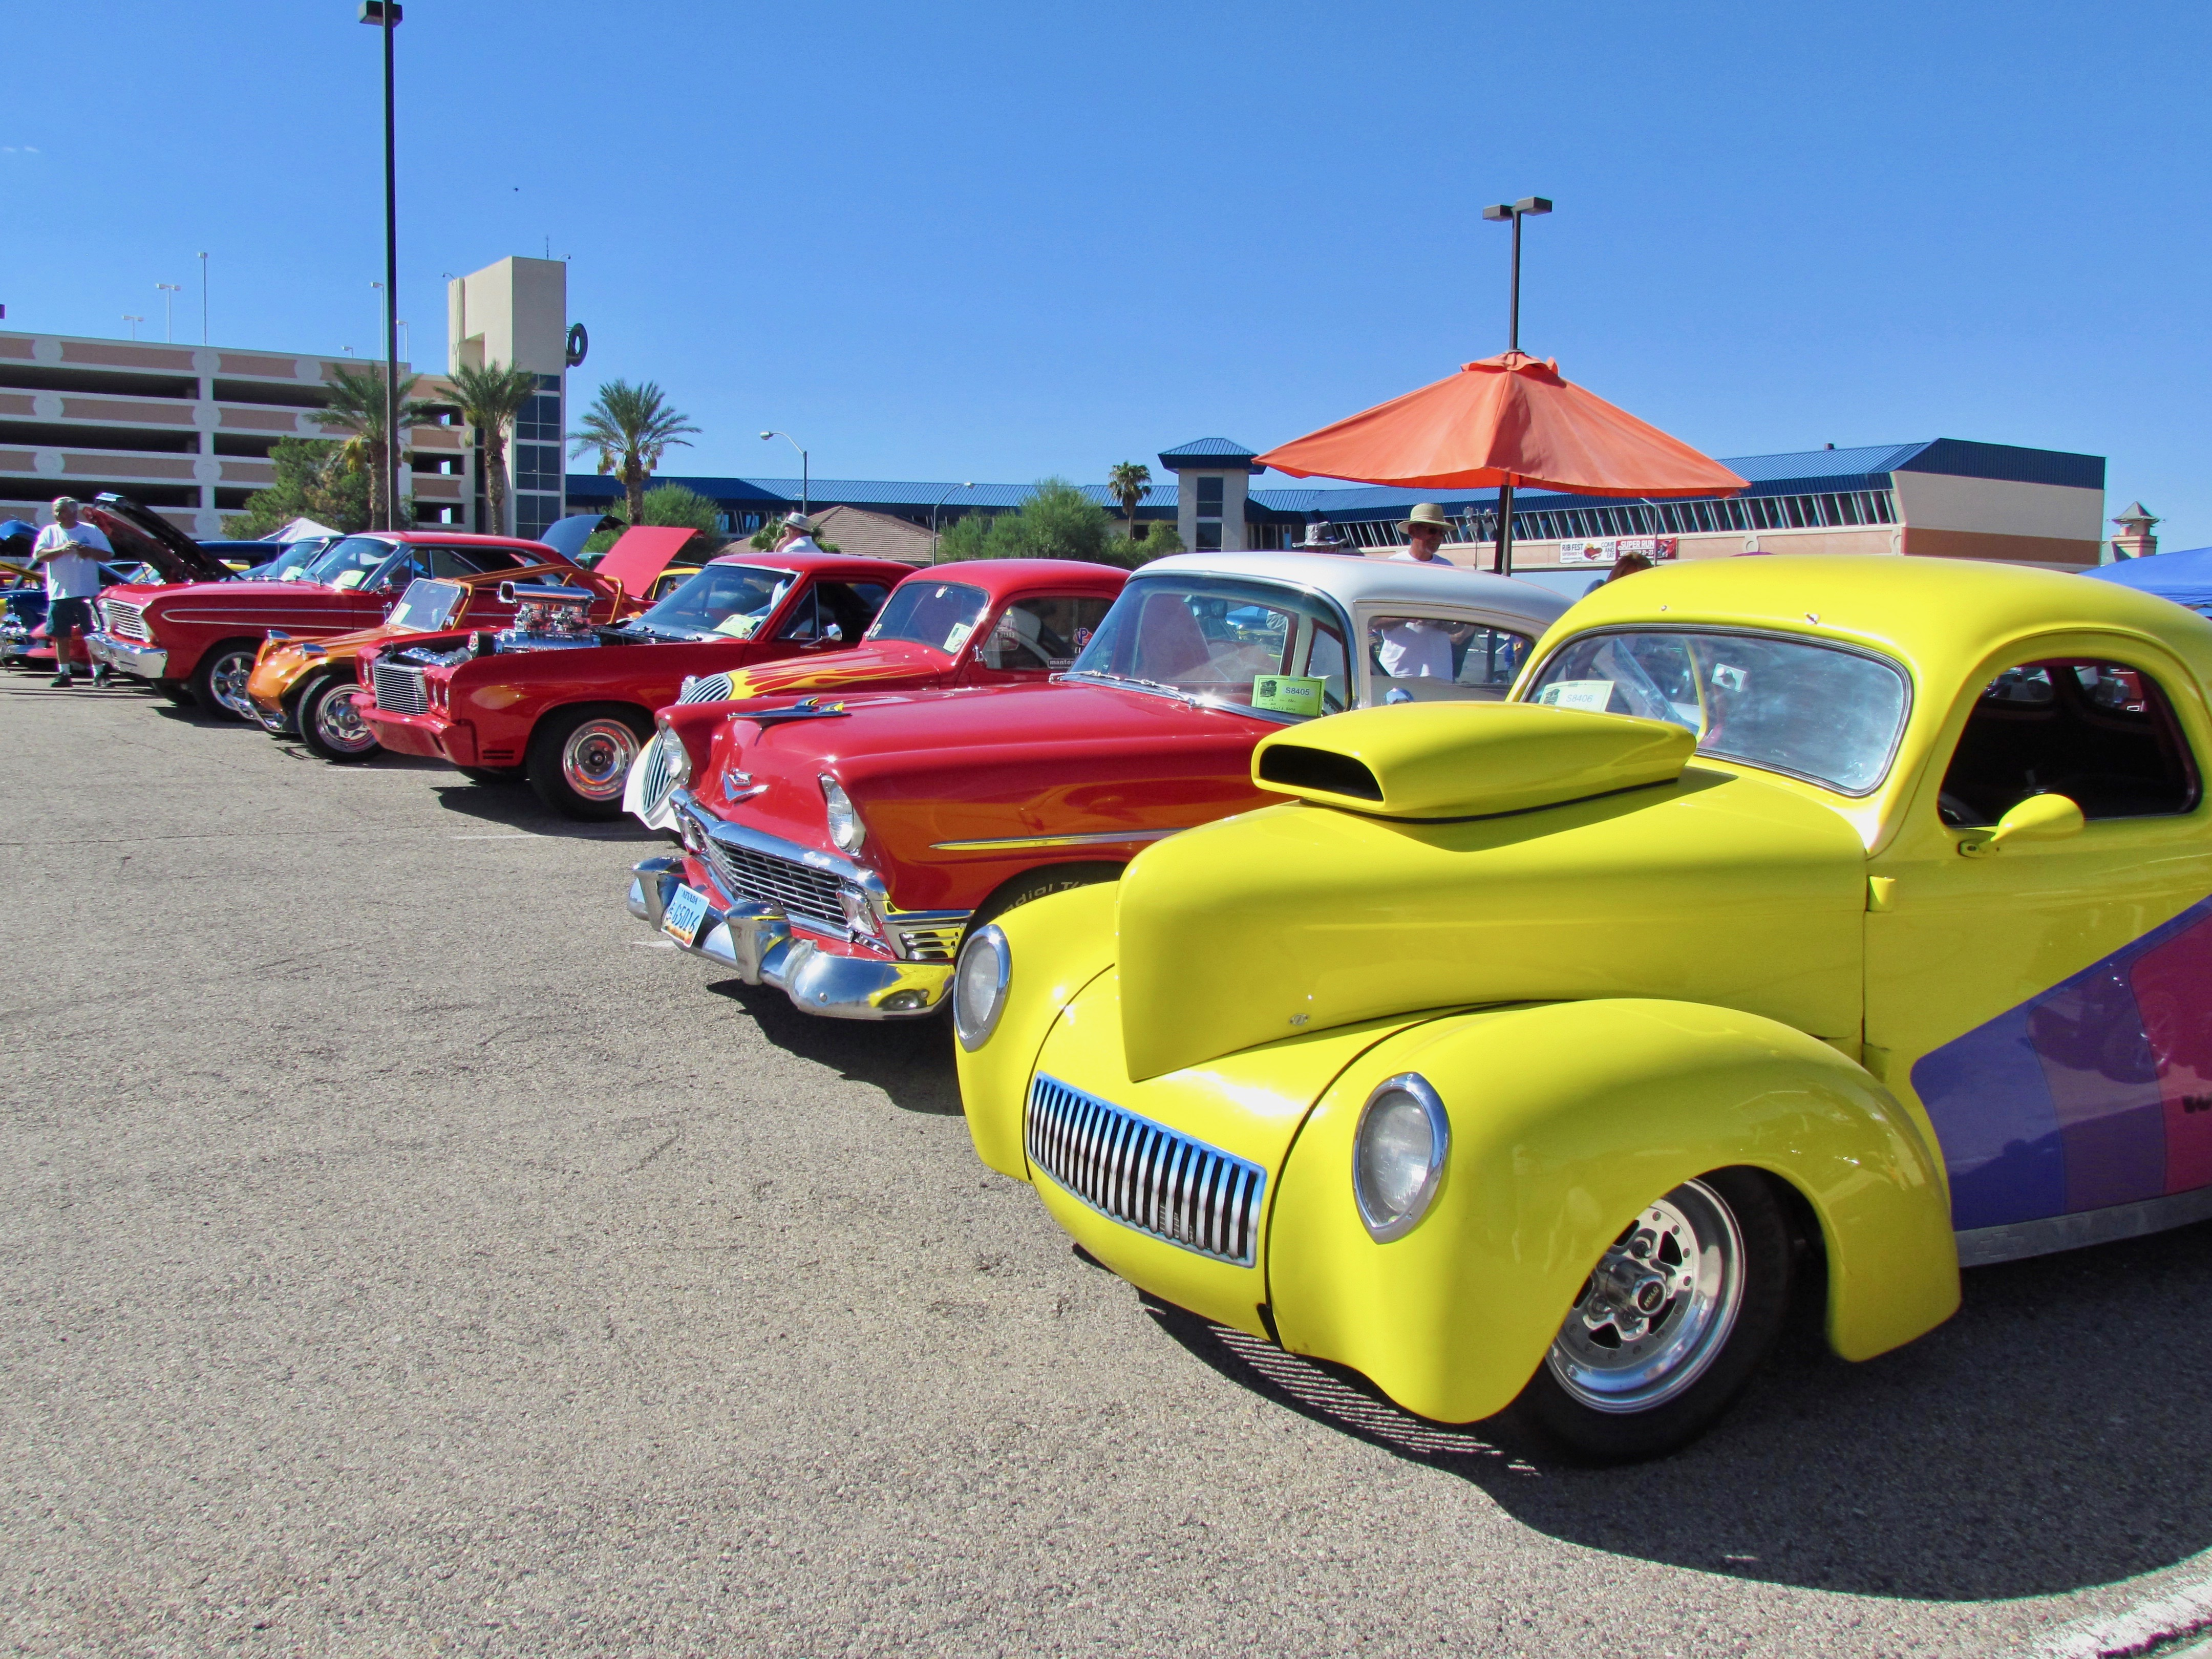 IMGsrnv ClassicCarscom Journal - Mesquite car show 2018